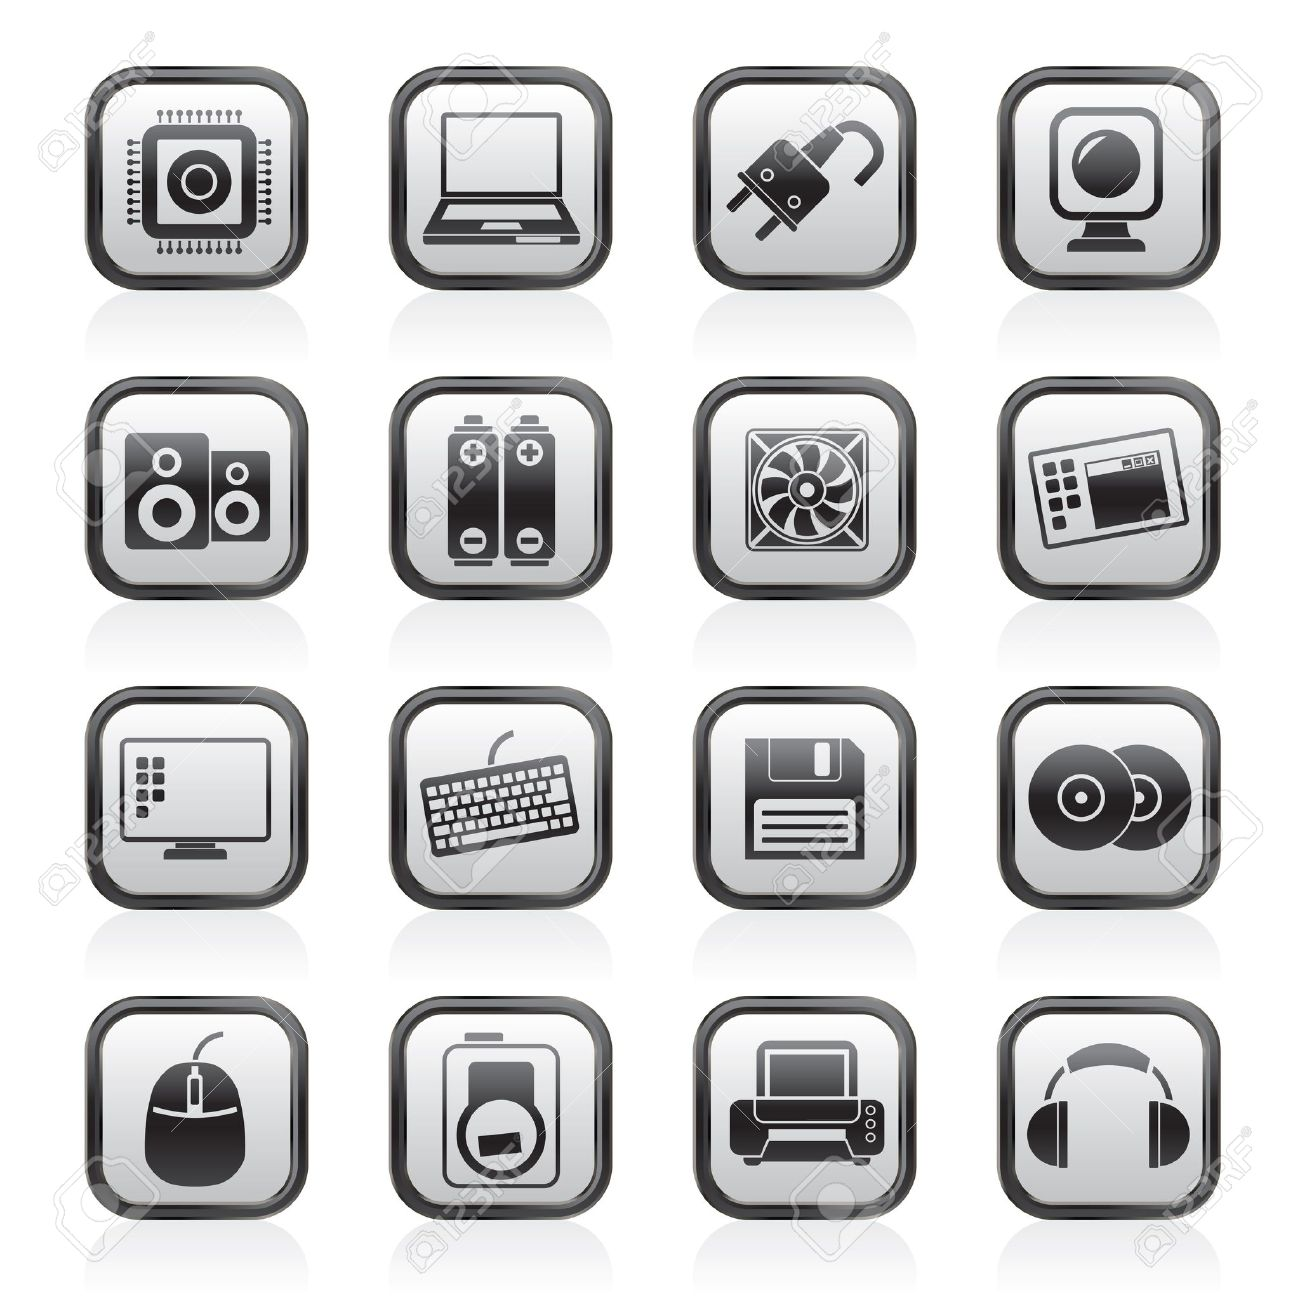 Computer accessories clipart free.